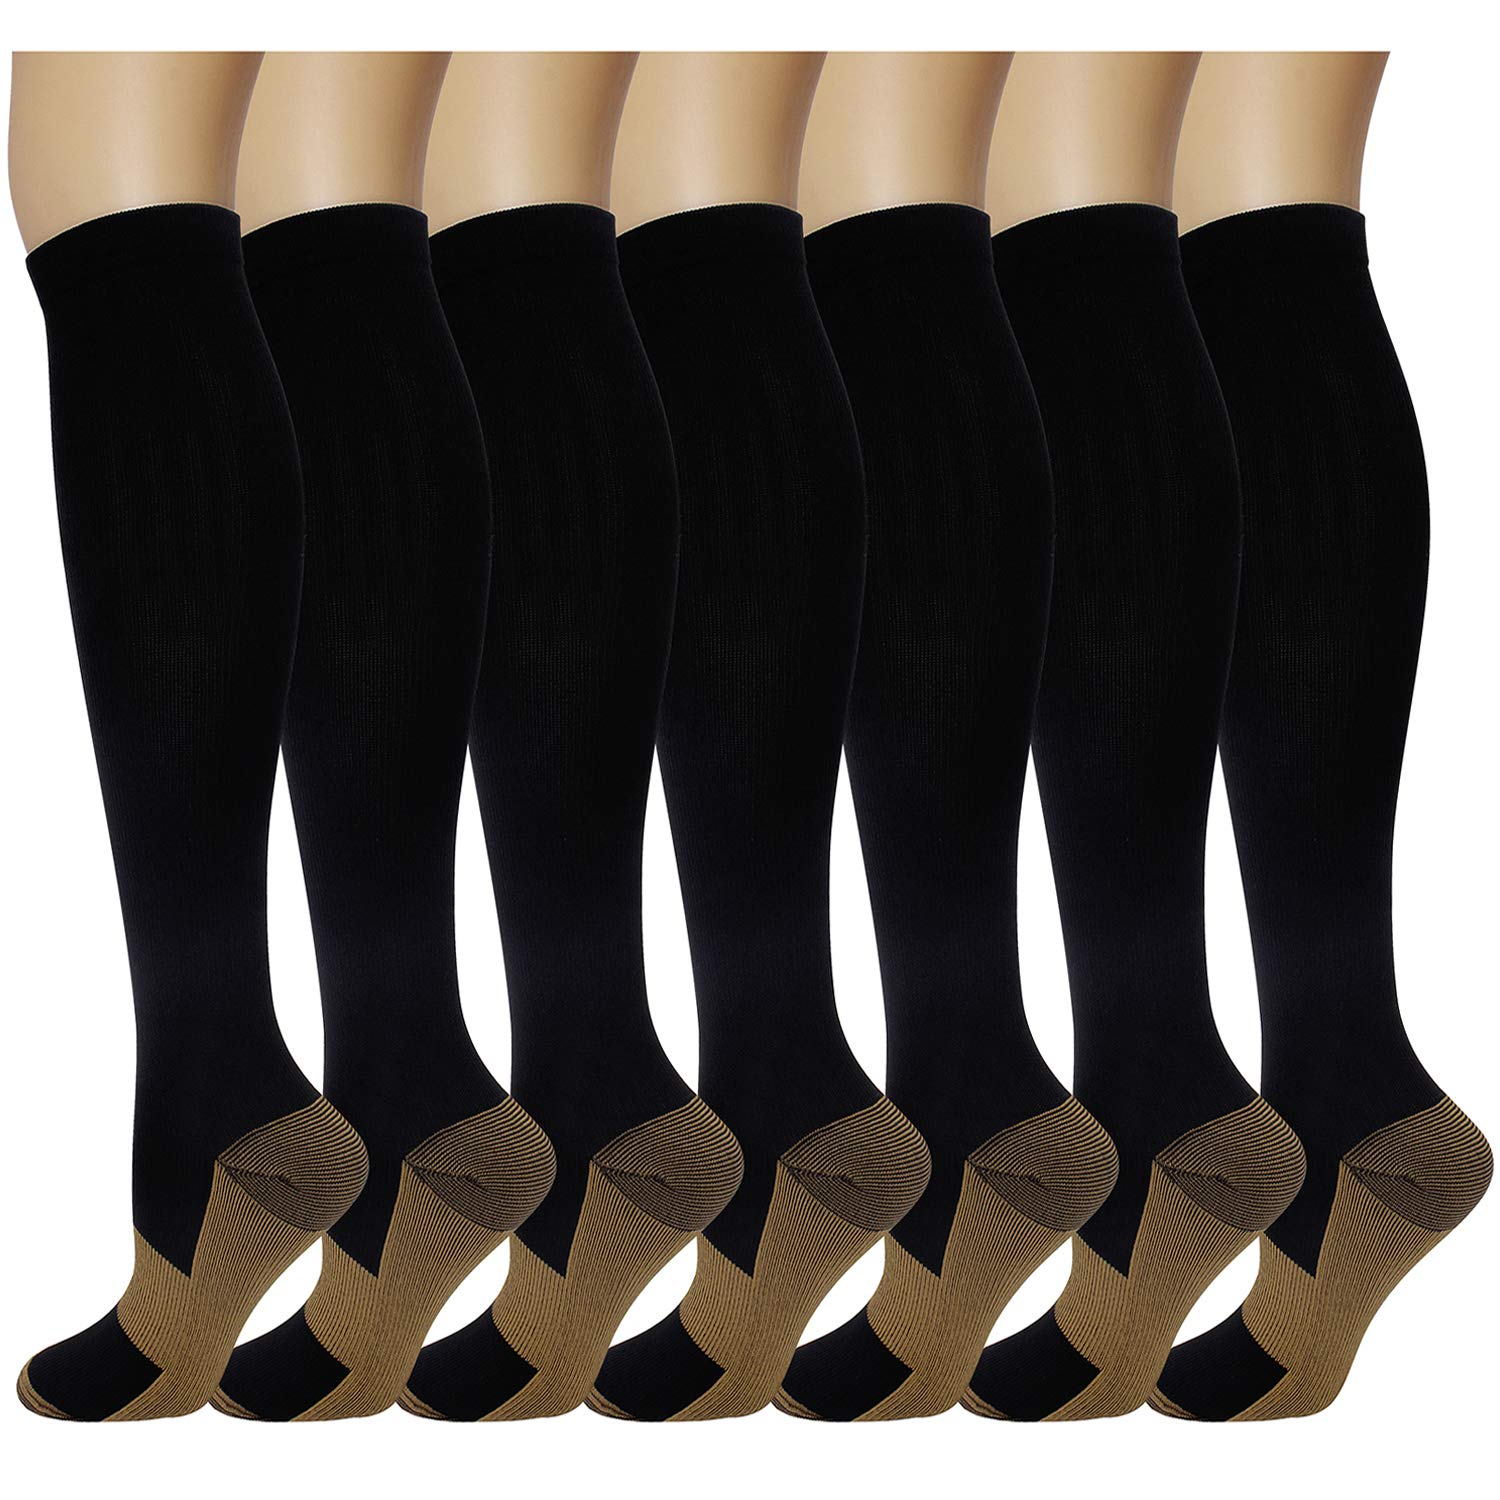 7 Pairs Copper Compression Socks for Men Women 20-30 mmHg Knee High Stockings for Athletic Nurse Sports Travel Medical Pregnancy